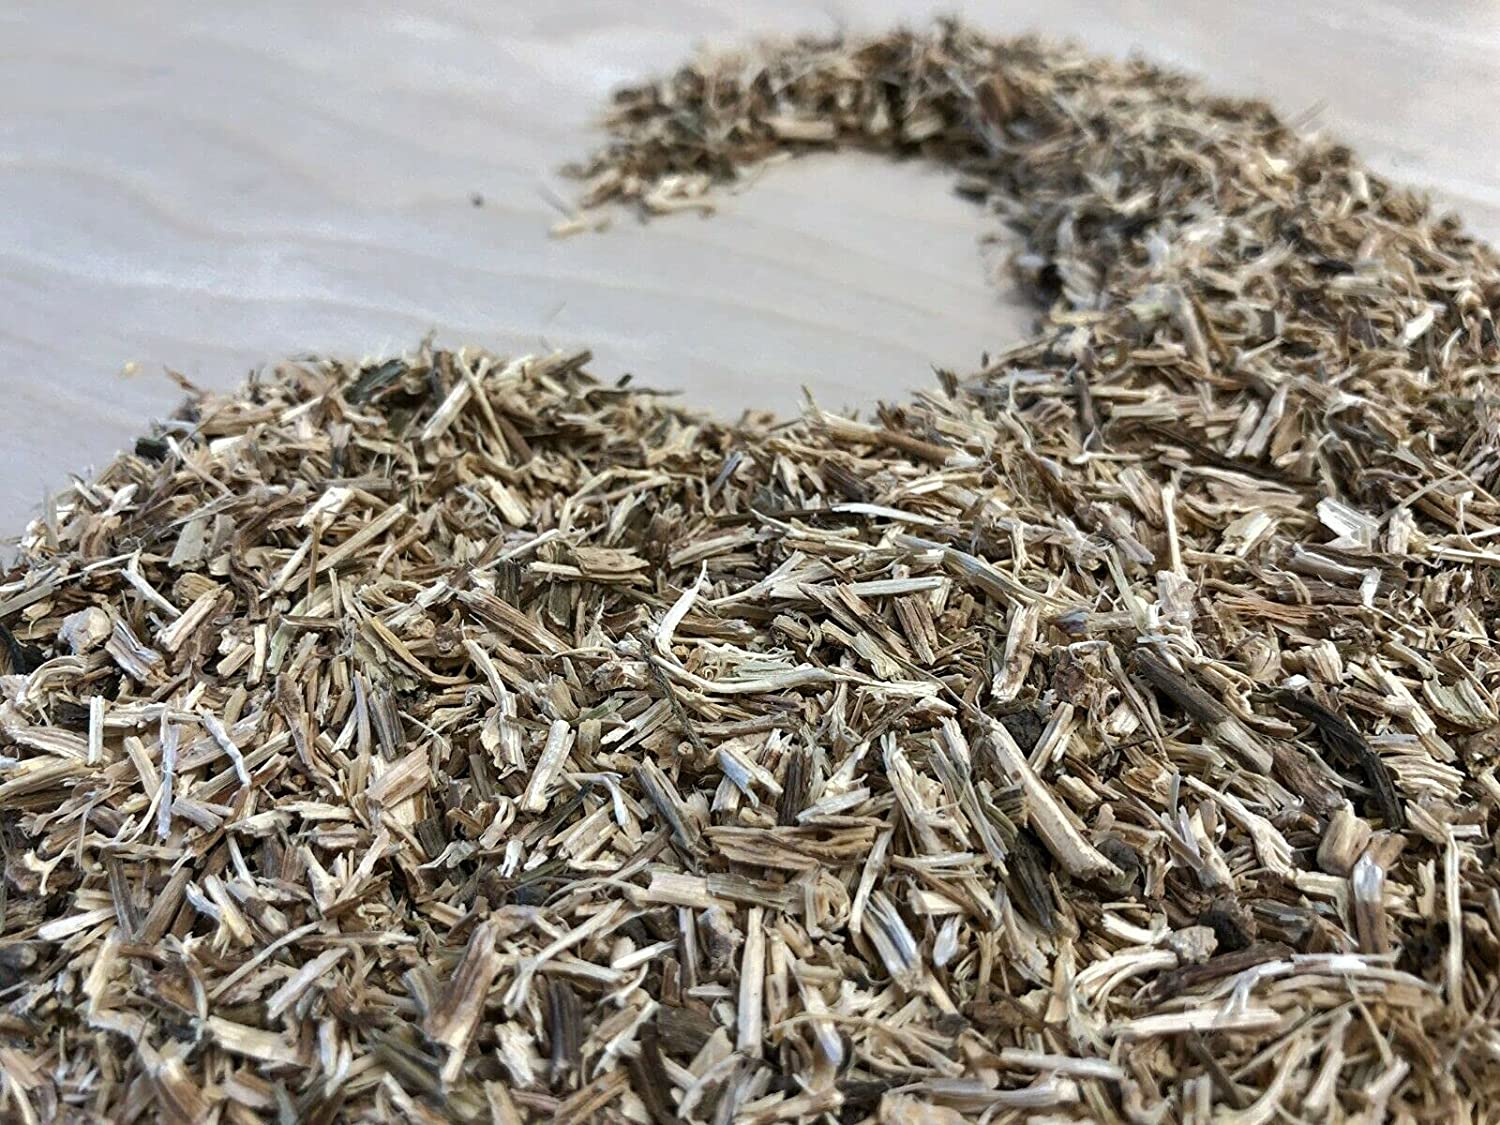 Nettle Urtica dioica Root 4 oz Max Max 52% OFF 70% OFF Chips